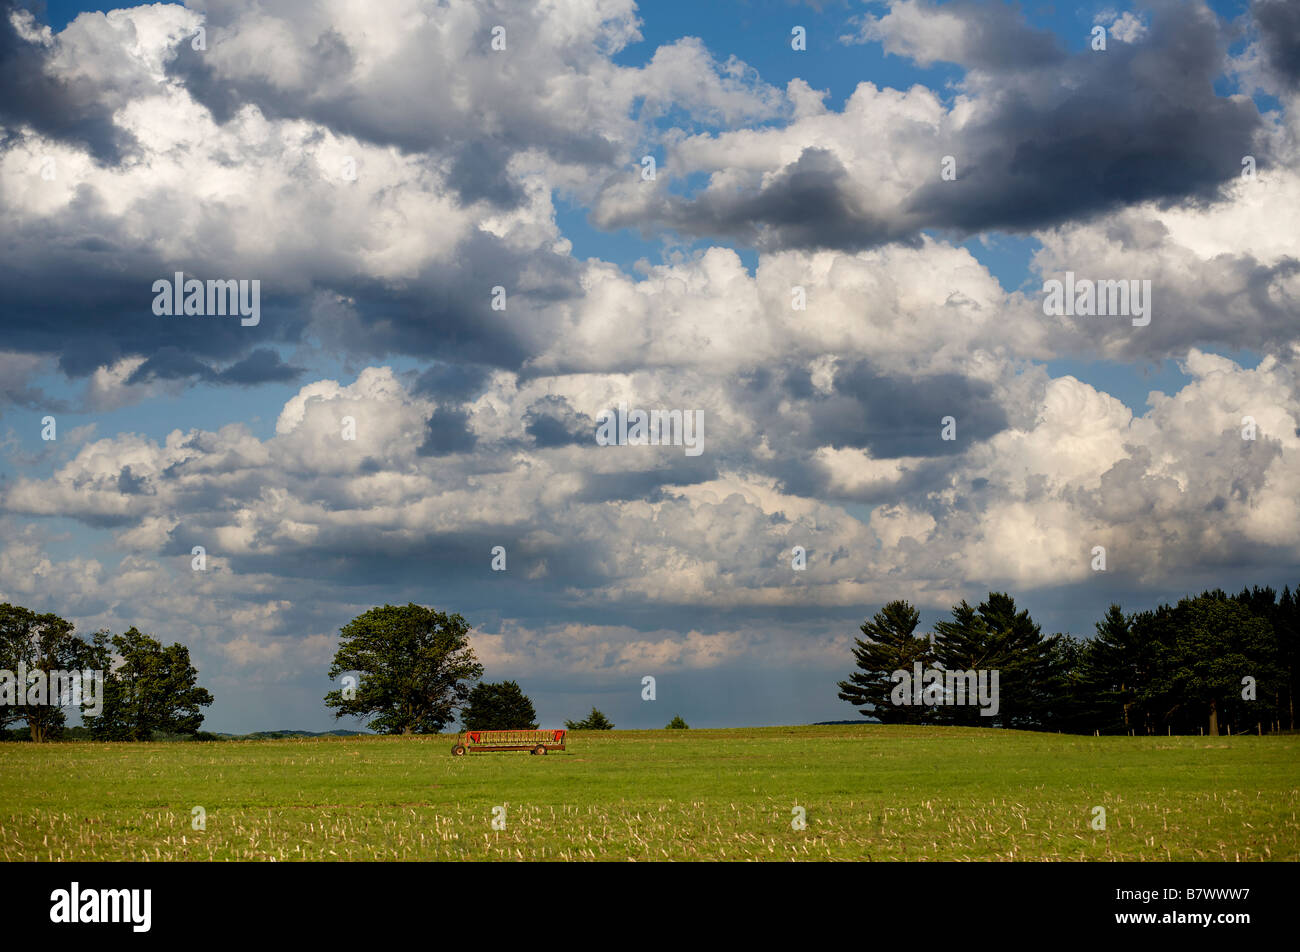 Clouds over a field in Southern Wisconsin - Stock Image